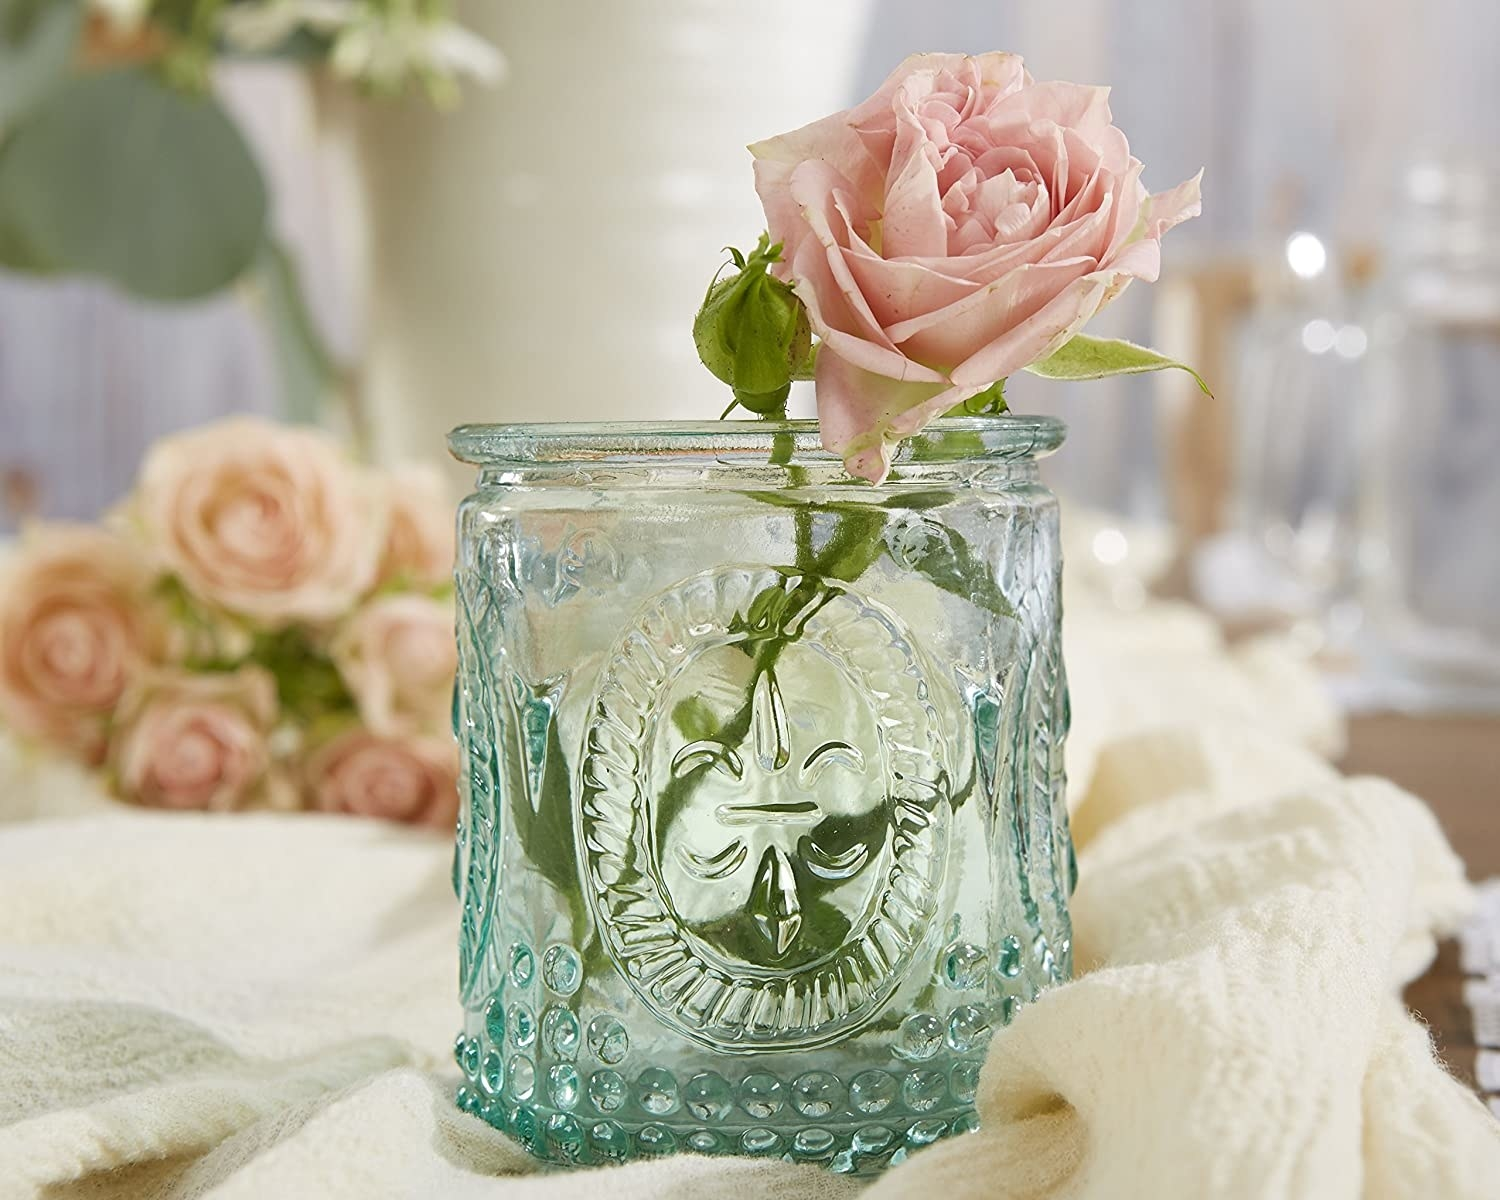 The small glass jar with a rose inside of it